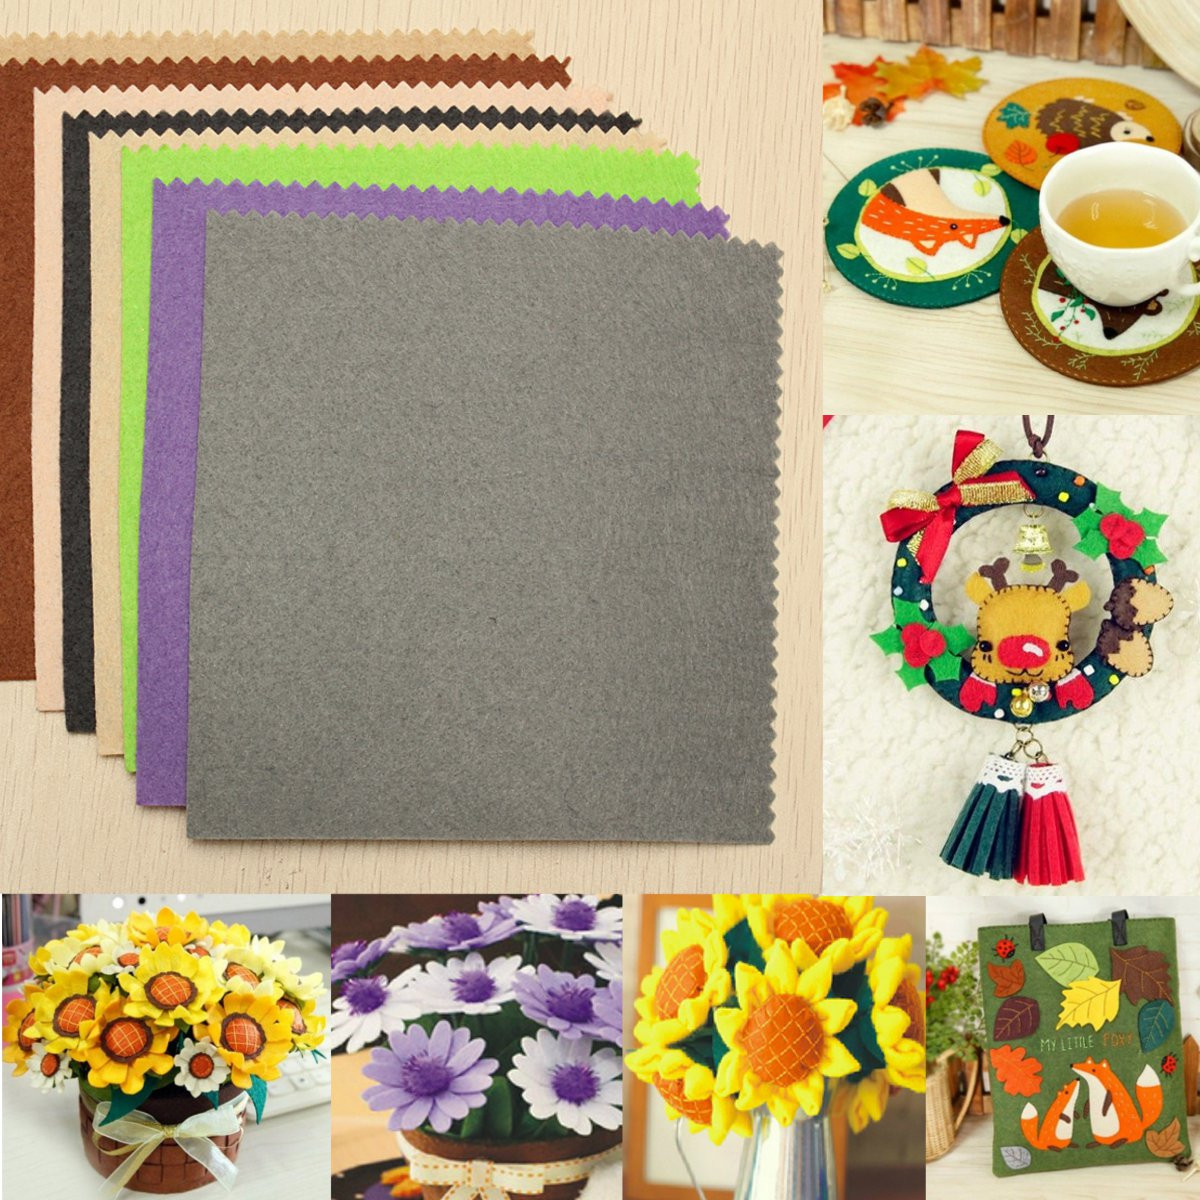 41pcs Fabric Crafts DIY Handmade Gifts For Friends Kids